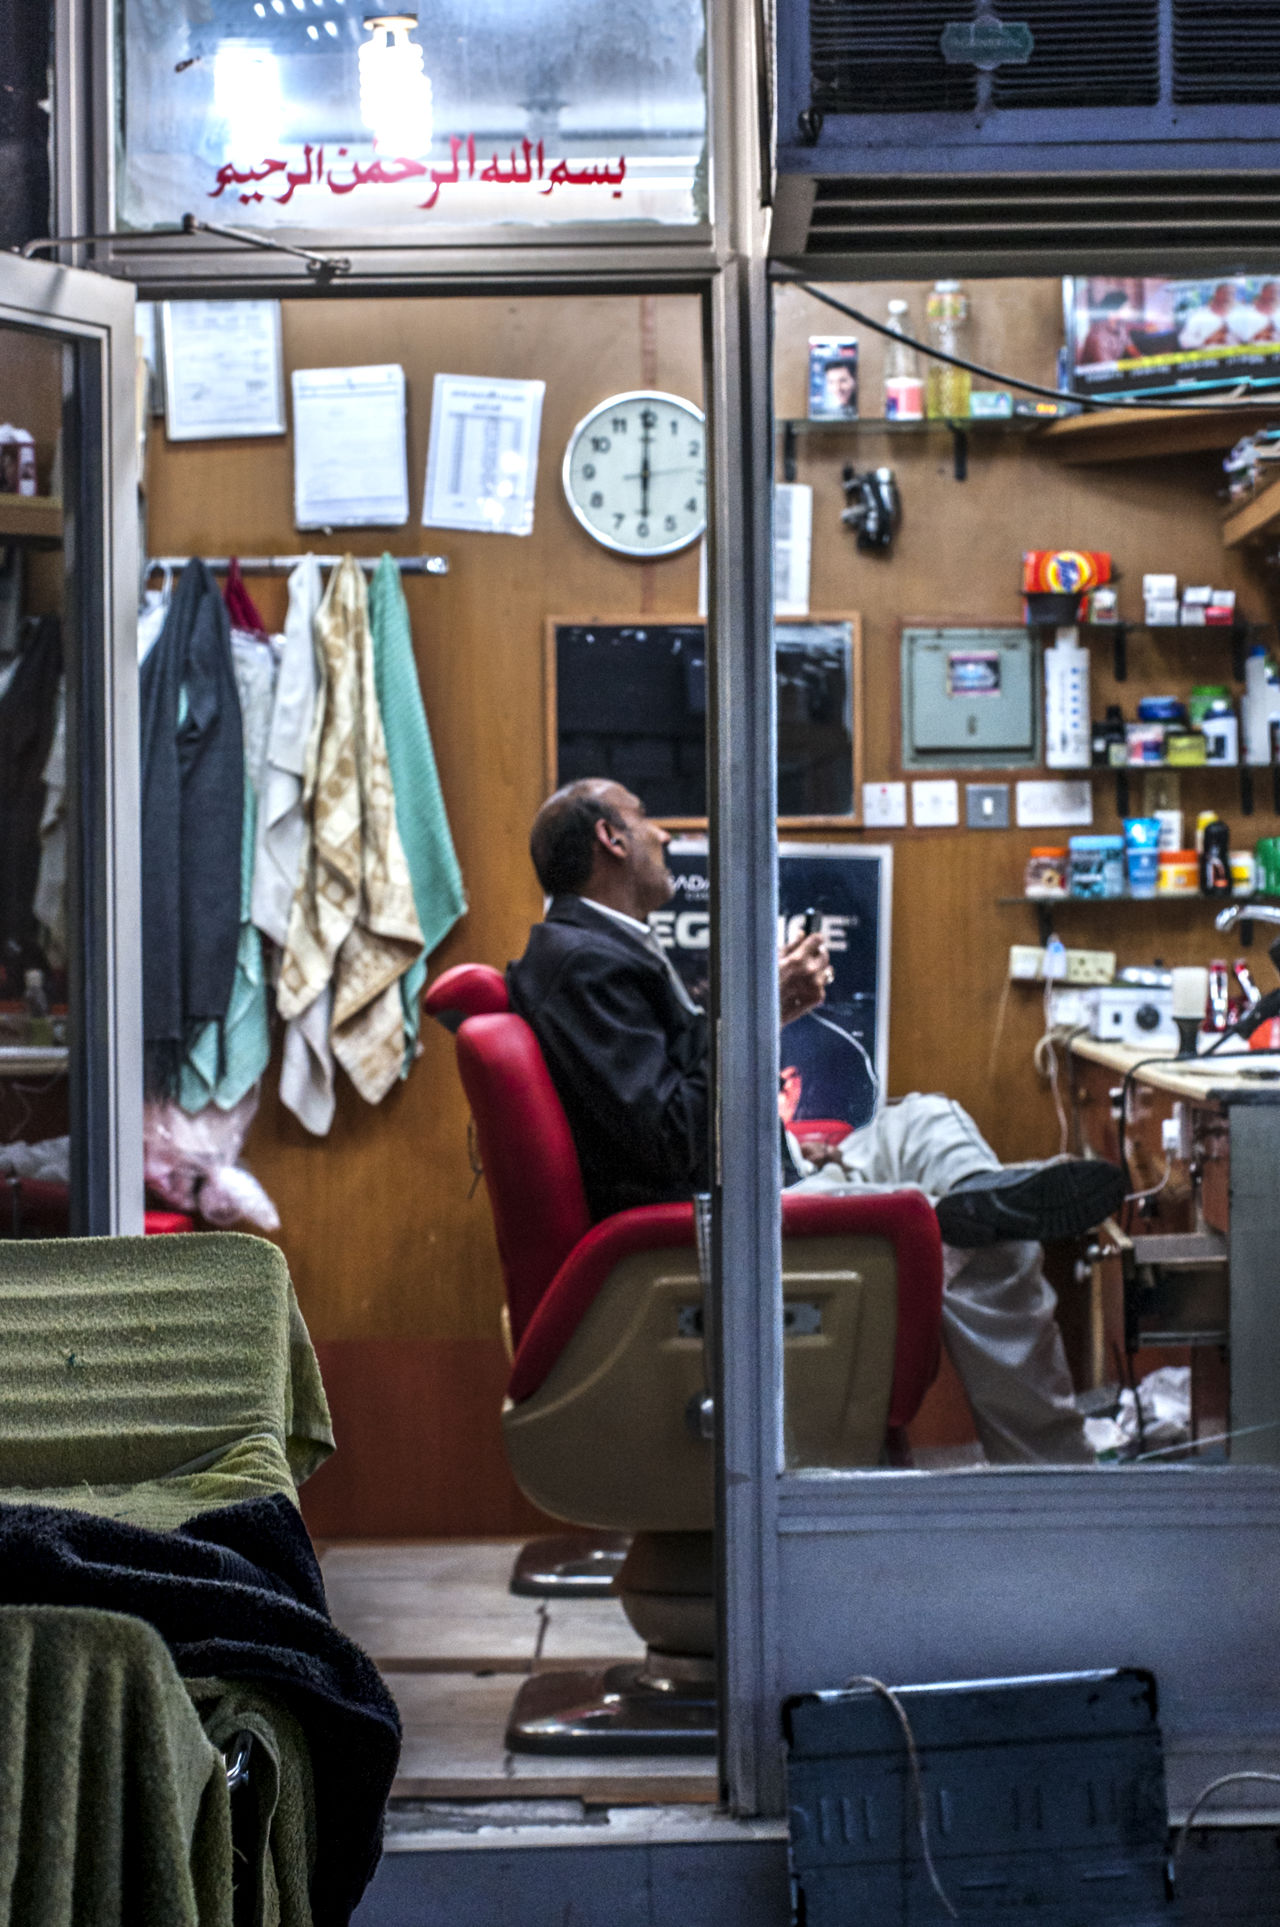 Our speciality : the Clean Cut... (obviously)😜 Barber Barbershop Clean Haircut Lifestyles Neighborhood Map Old-fashioned The Street Photographer - 2017 EyeEm Awards Window Shopping